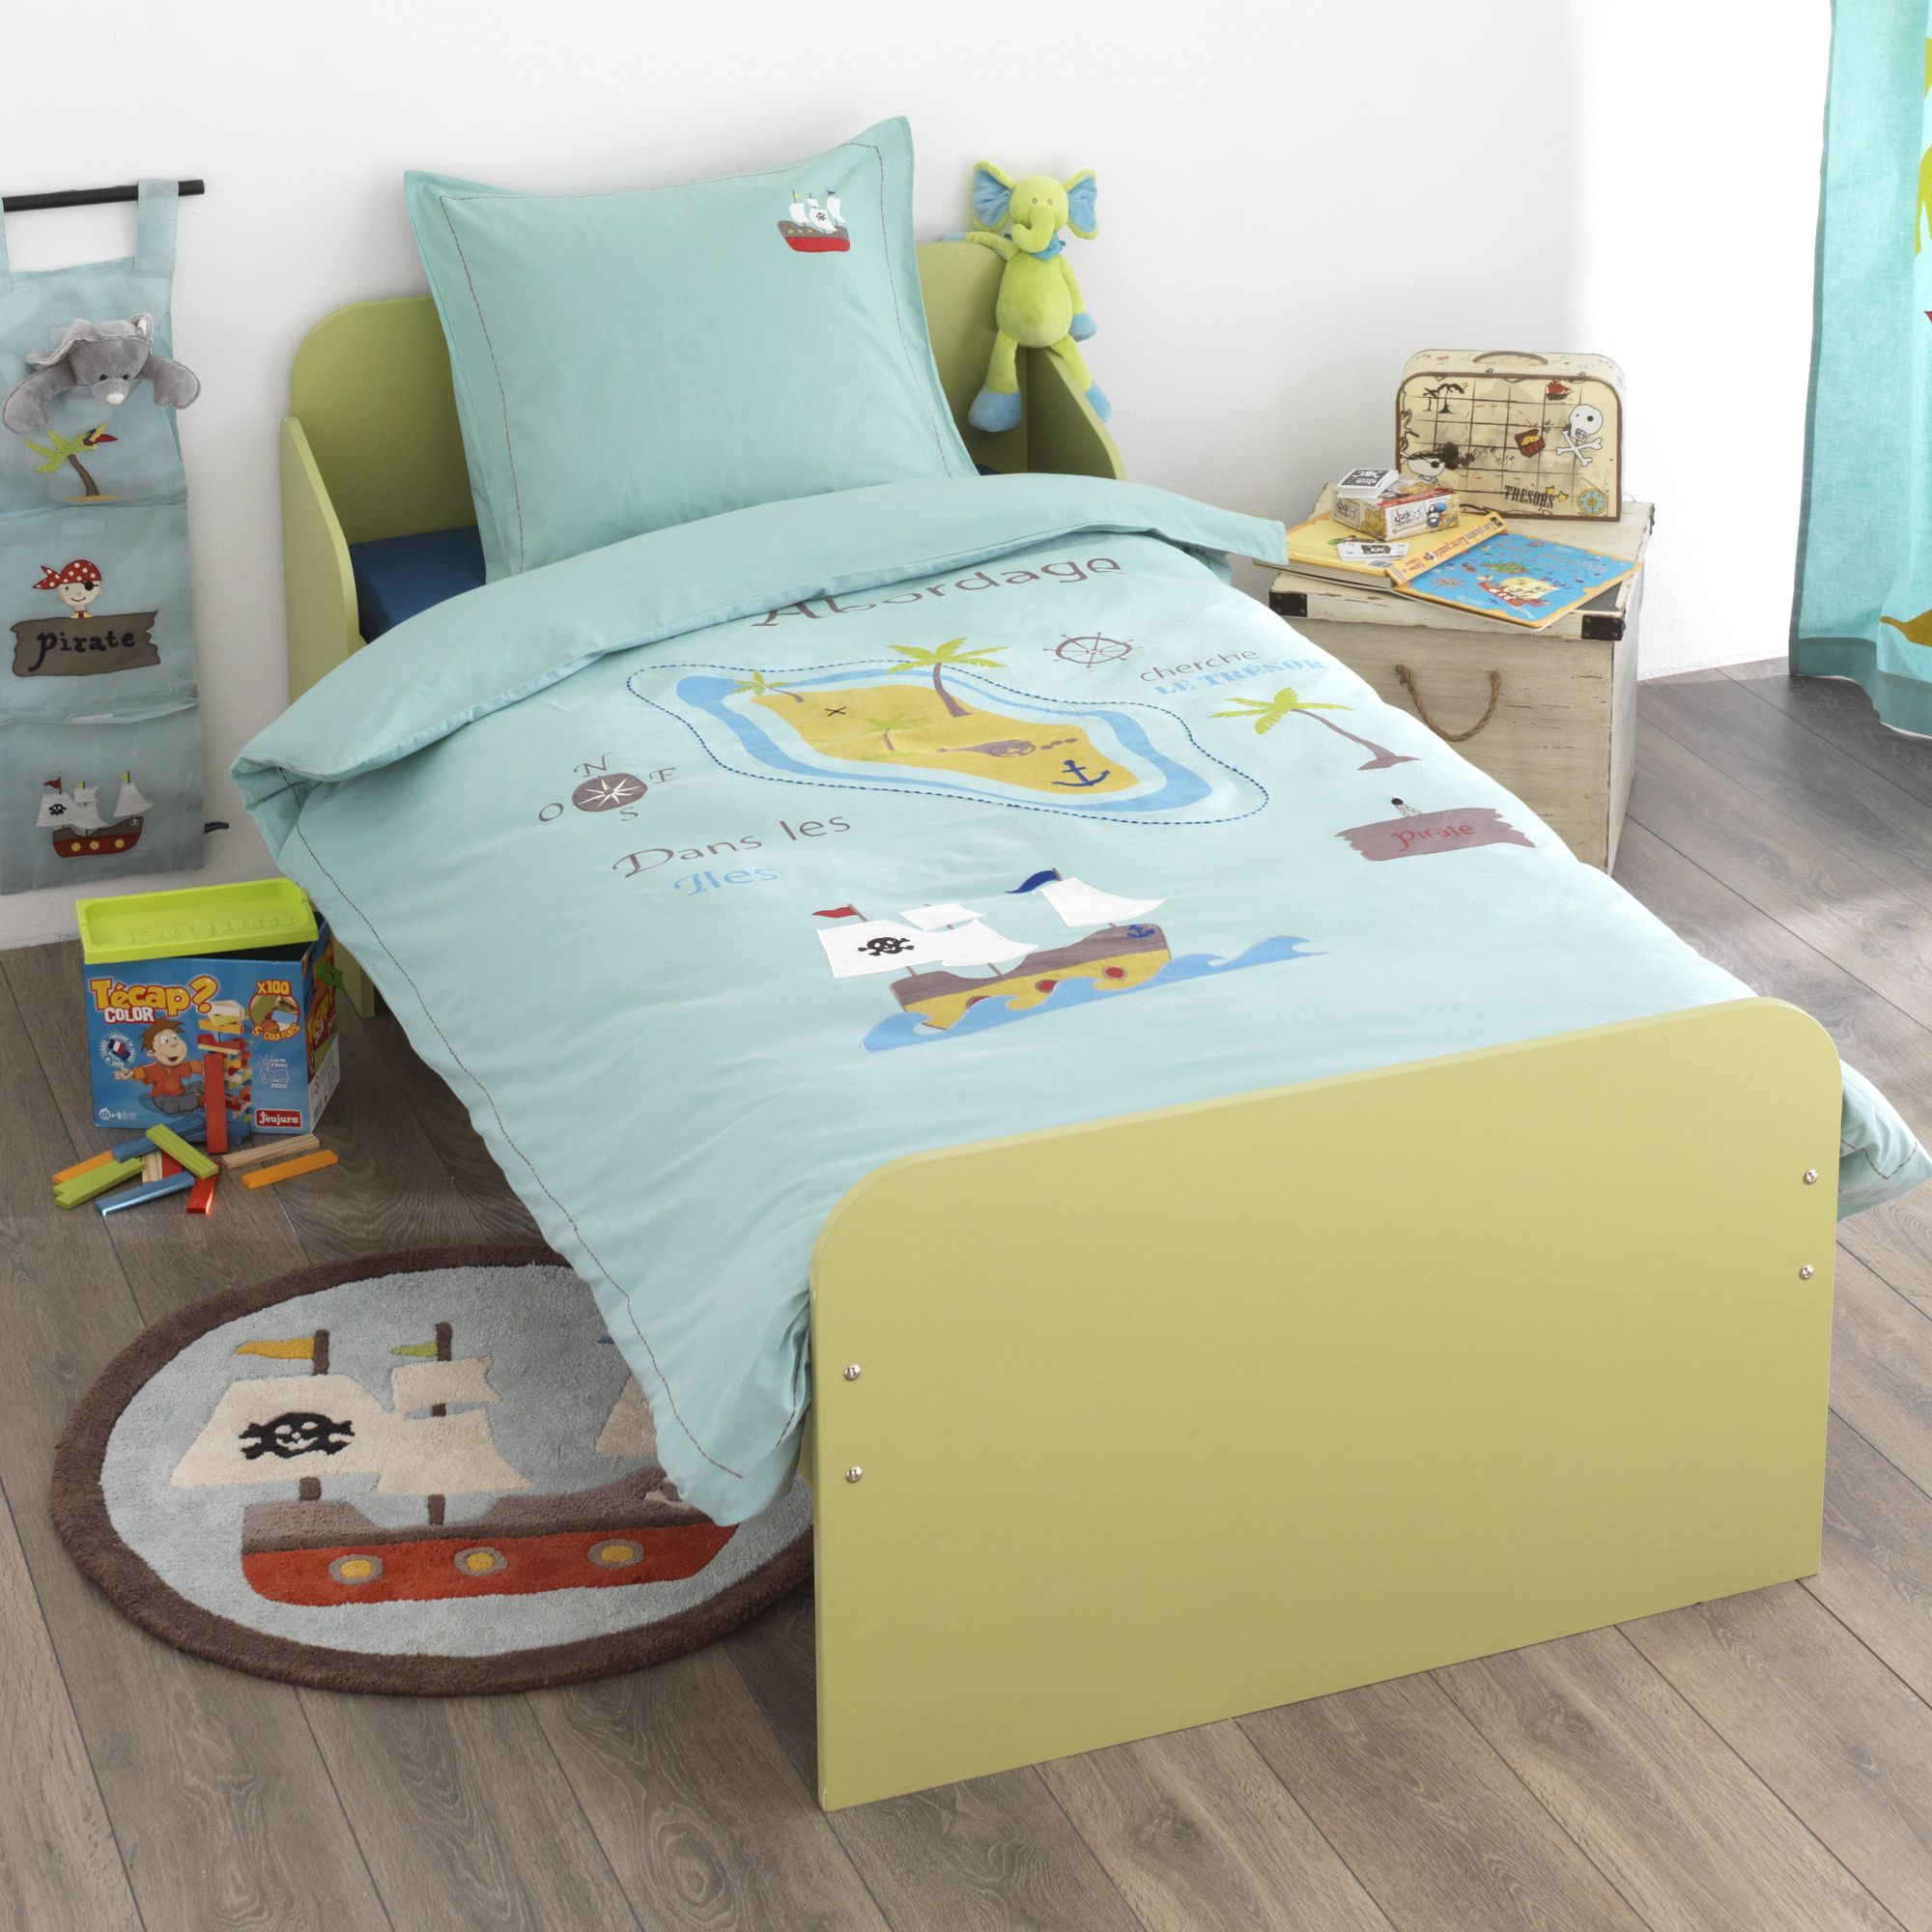 parure de couette pour enfant bleu pirate les parures de lit enfants linge de lit enfant. Black Bedroom Furniture Sets. Home Design Ideas